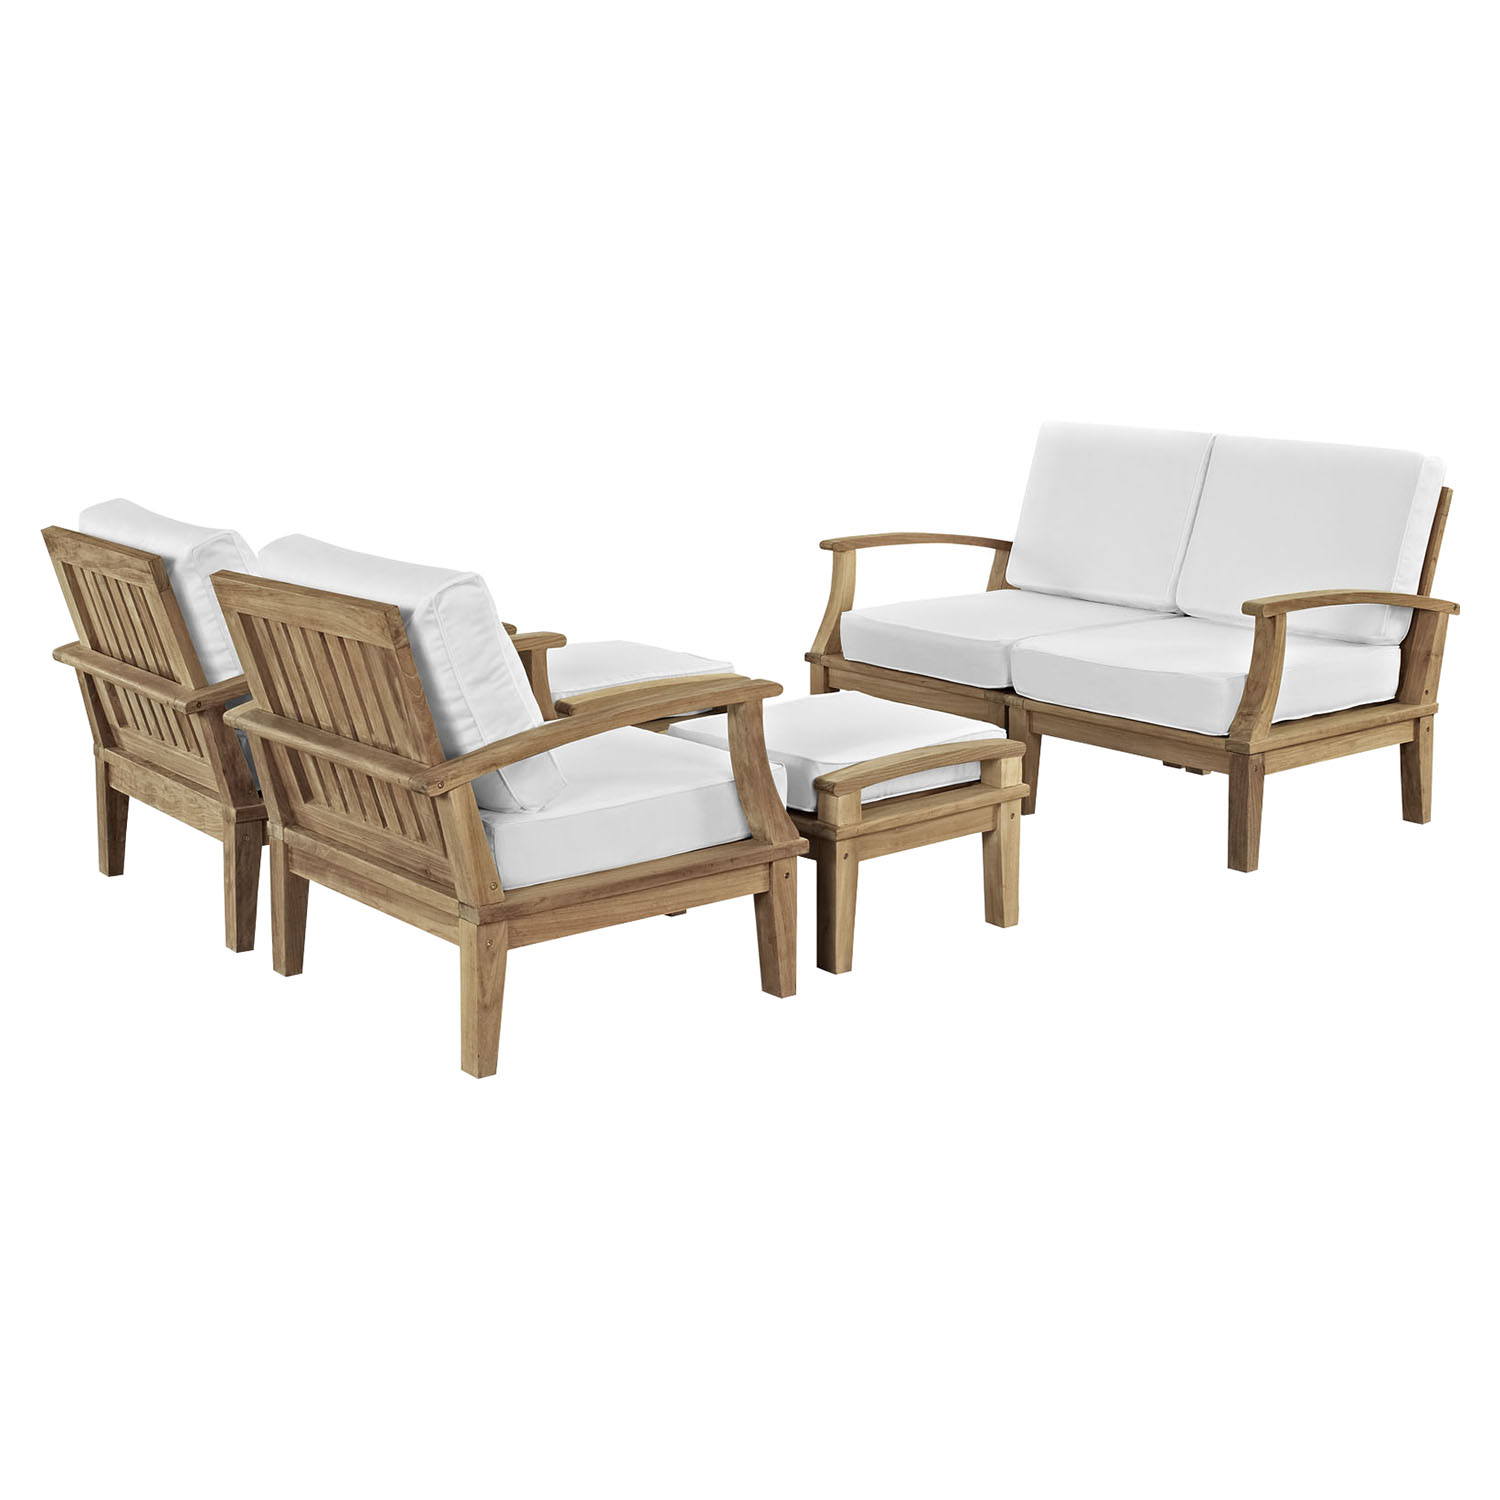 Marina 6 Pieces Patio Teak Sofa Set - Natural, White - EEI-1597-NAT-WHI-SET